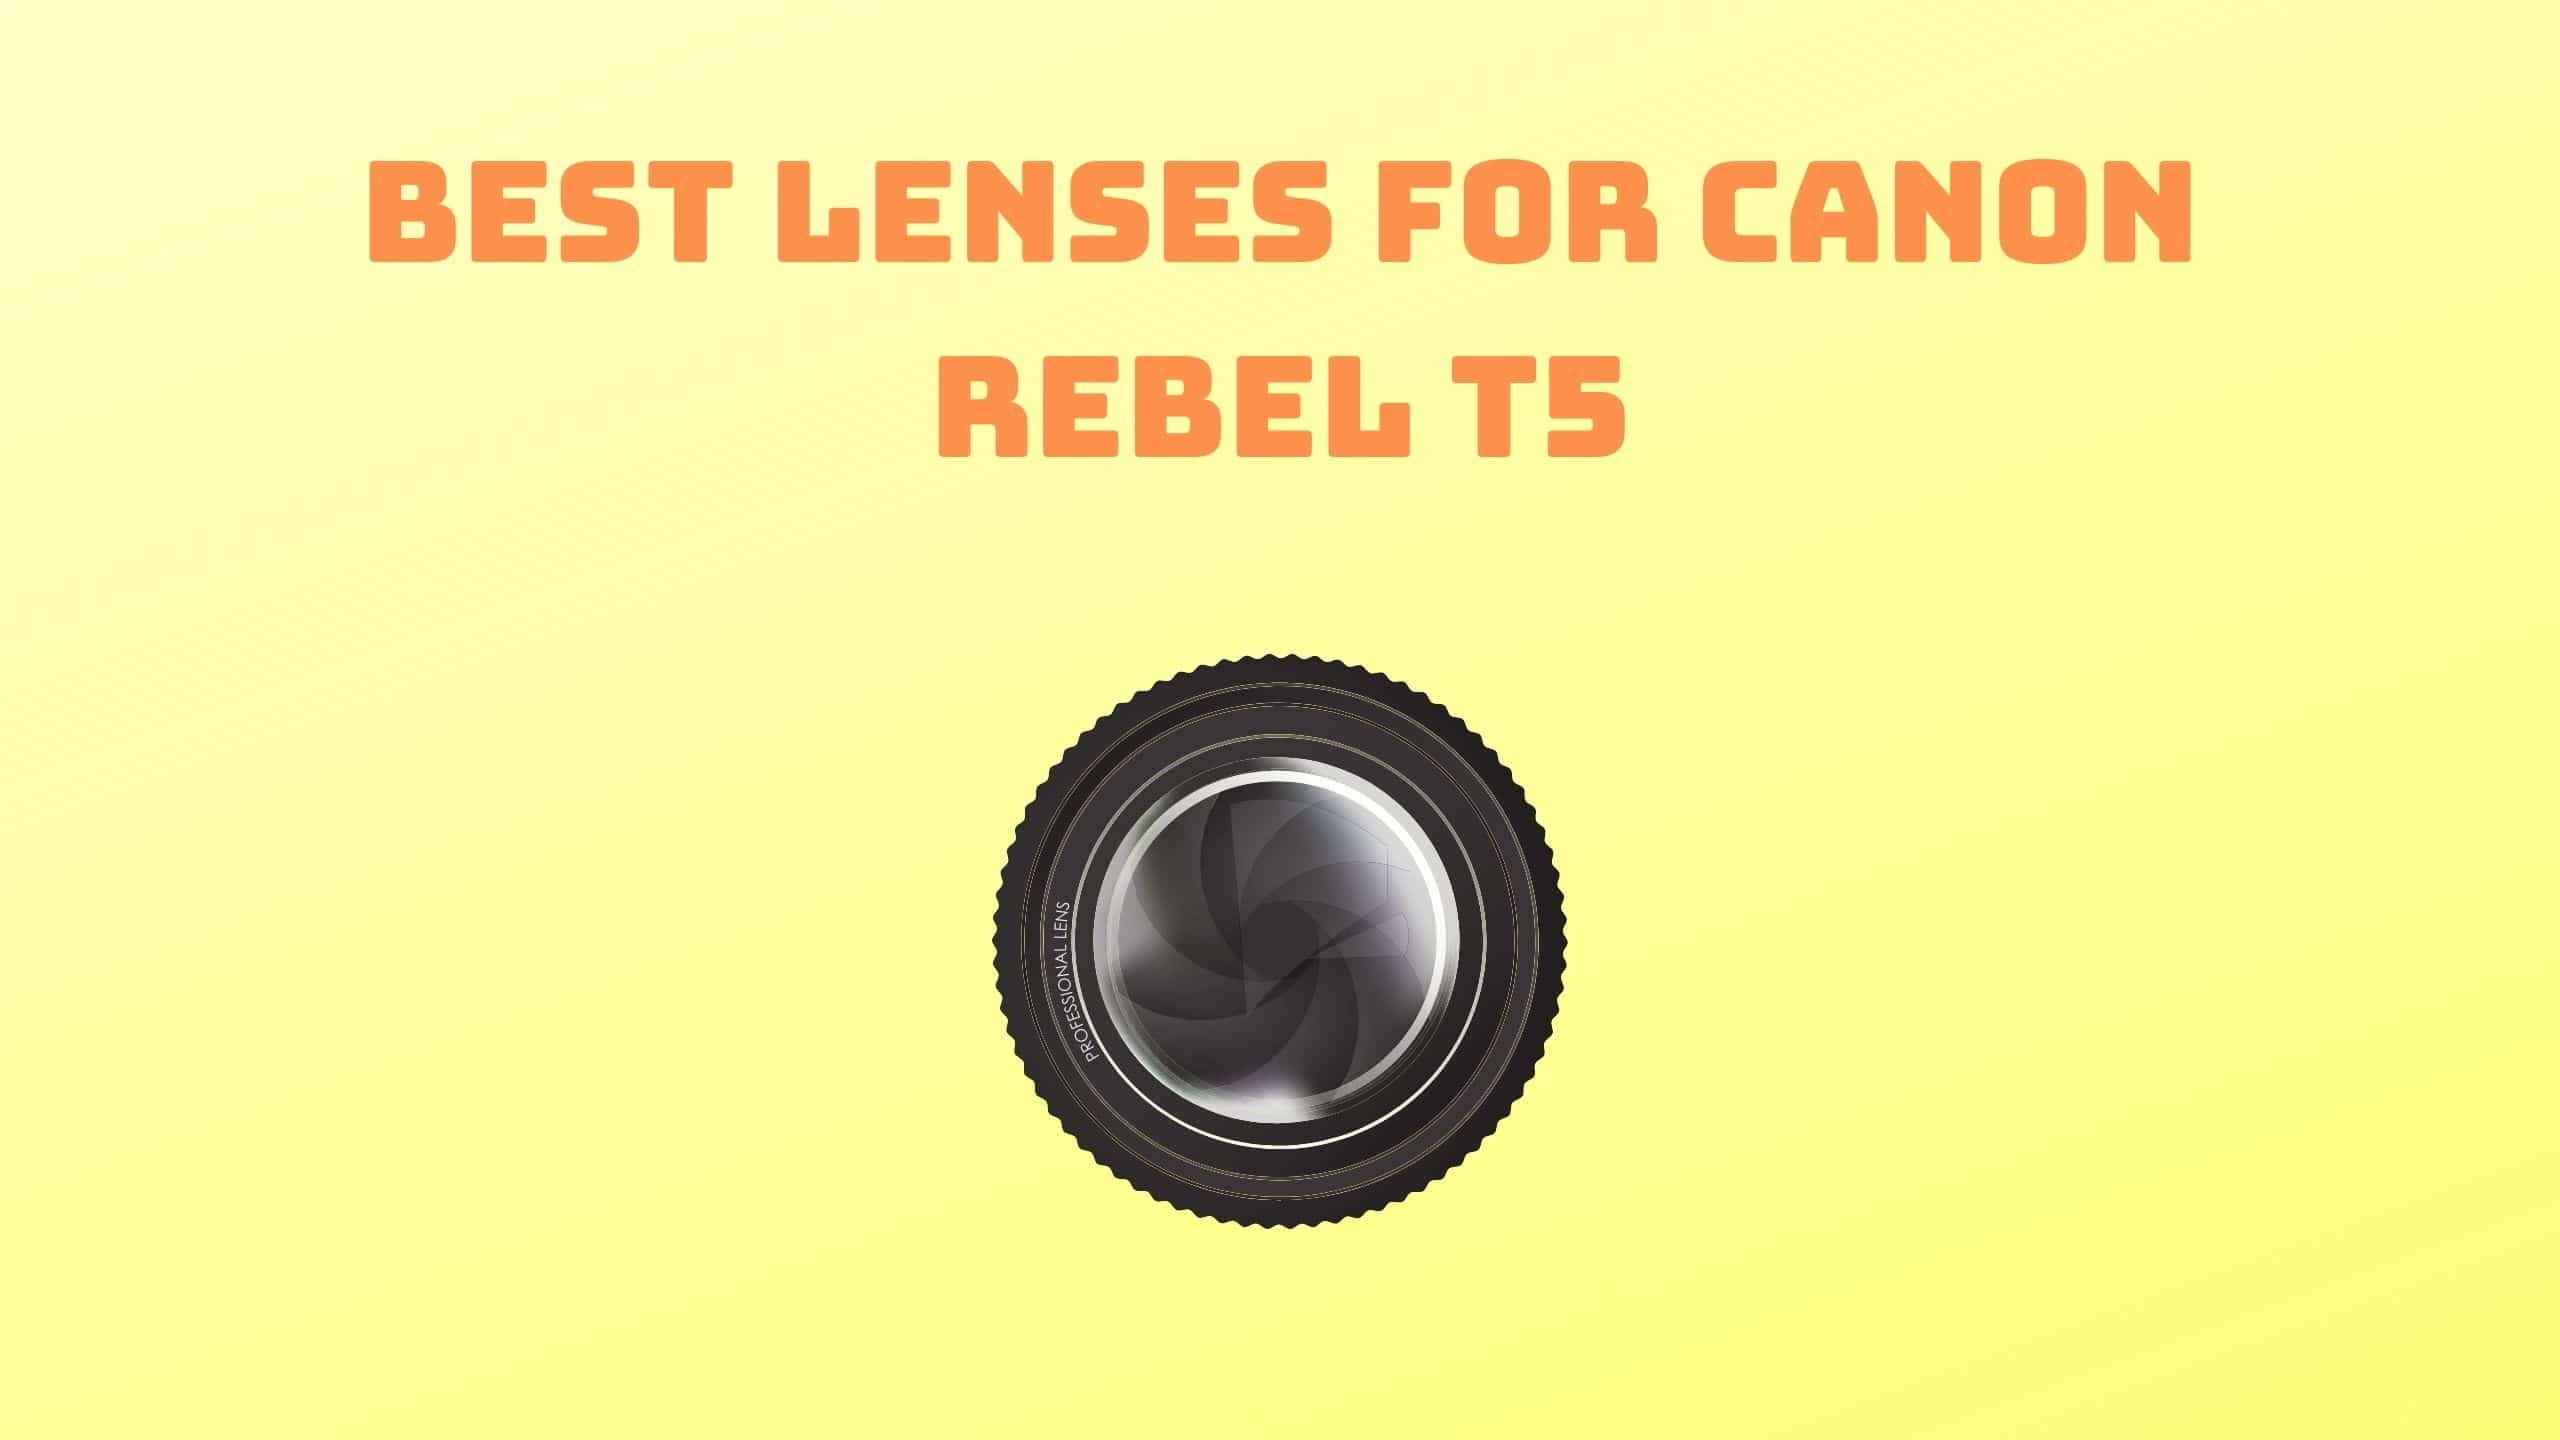 Best Lenses for Canon Rebel T5